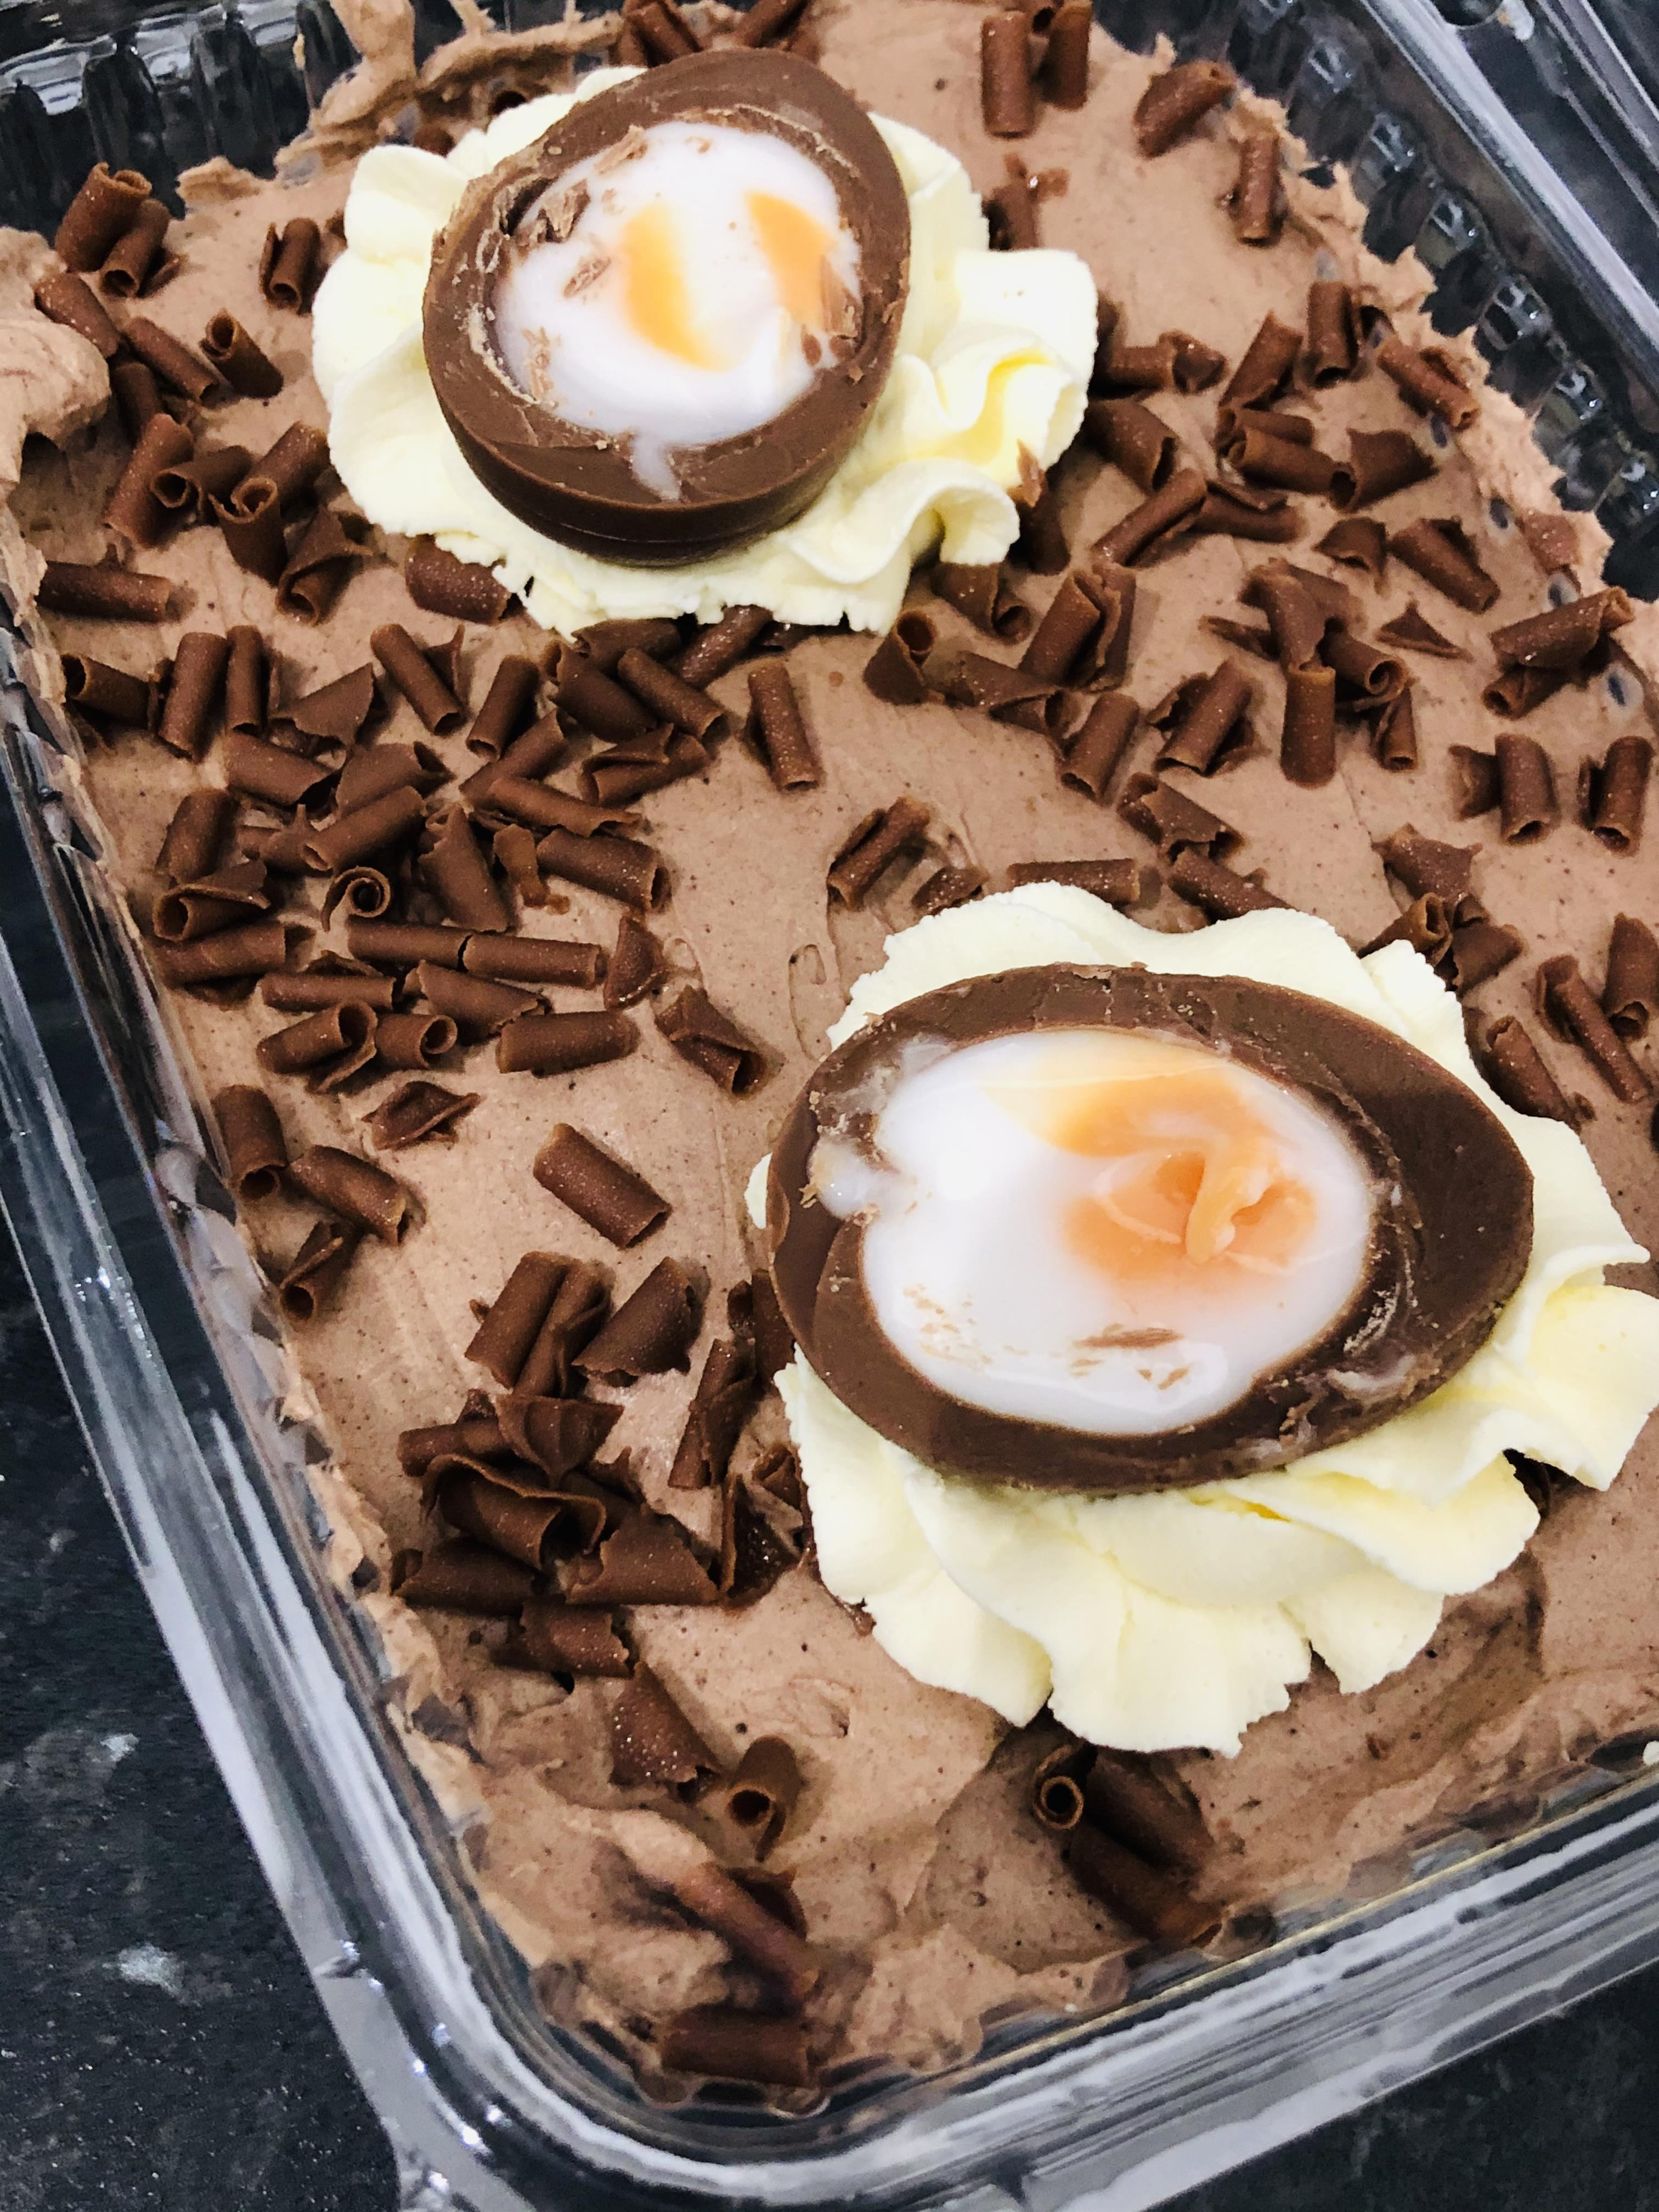 Cadburys Creme Egg Cheesecake